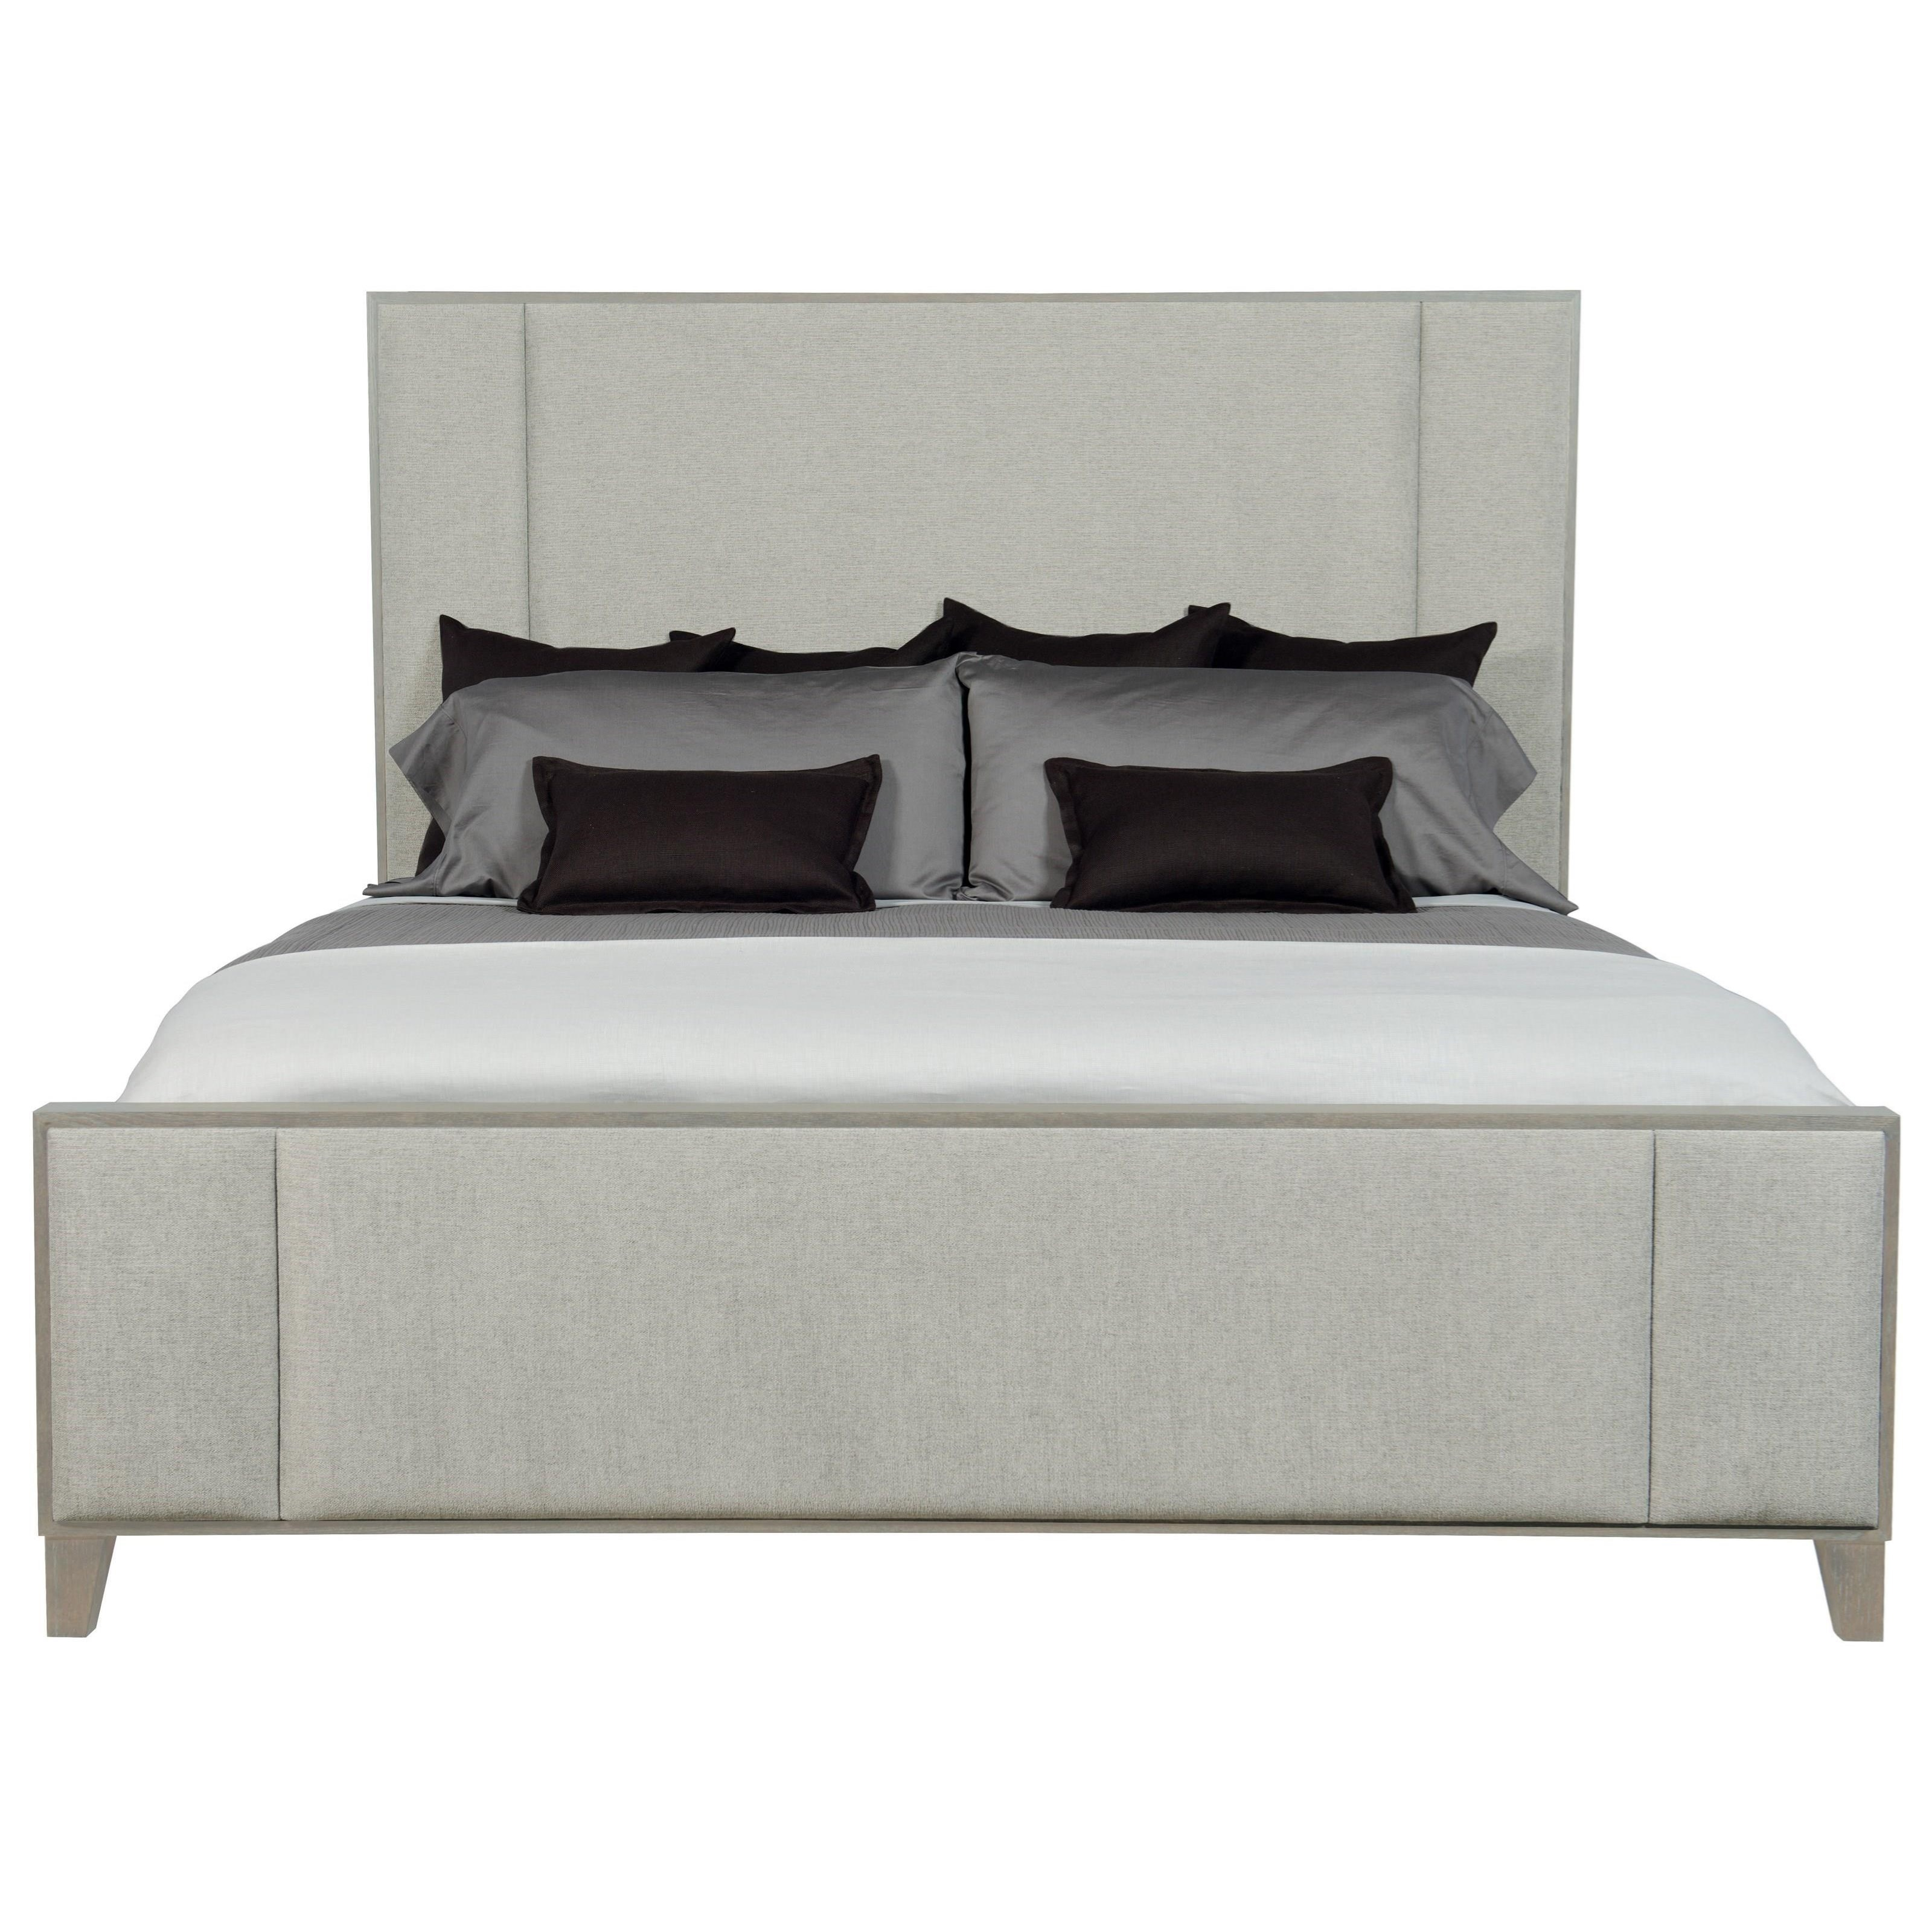 Linea King Upholstered Panel Bed by Bernhardt at Stuckey Furniture